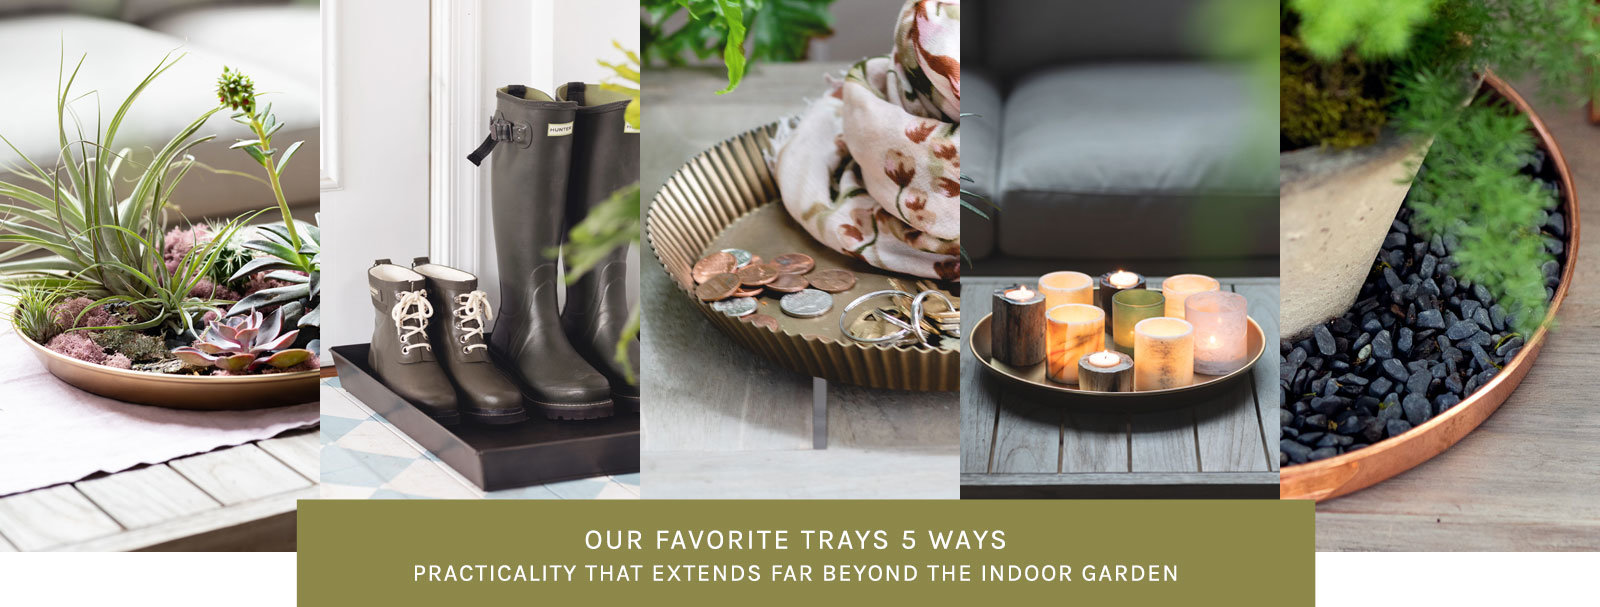 Our Favorite Trays 5 Ways | Our trays' practicality extends far beyond the indoor garden.